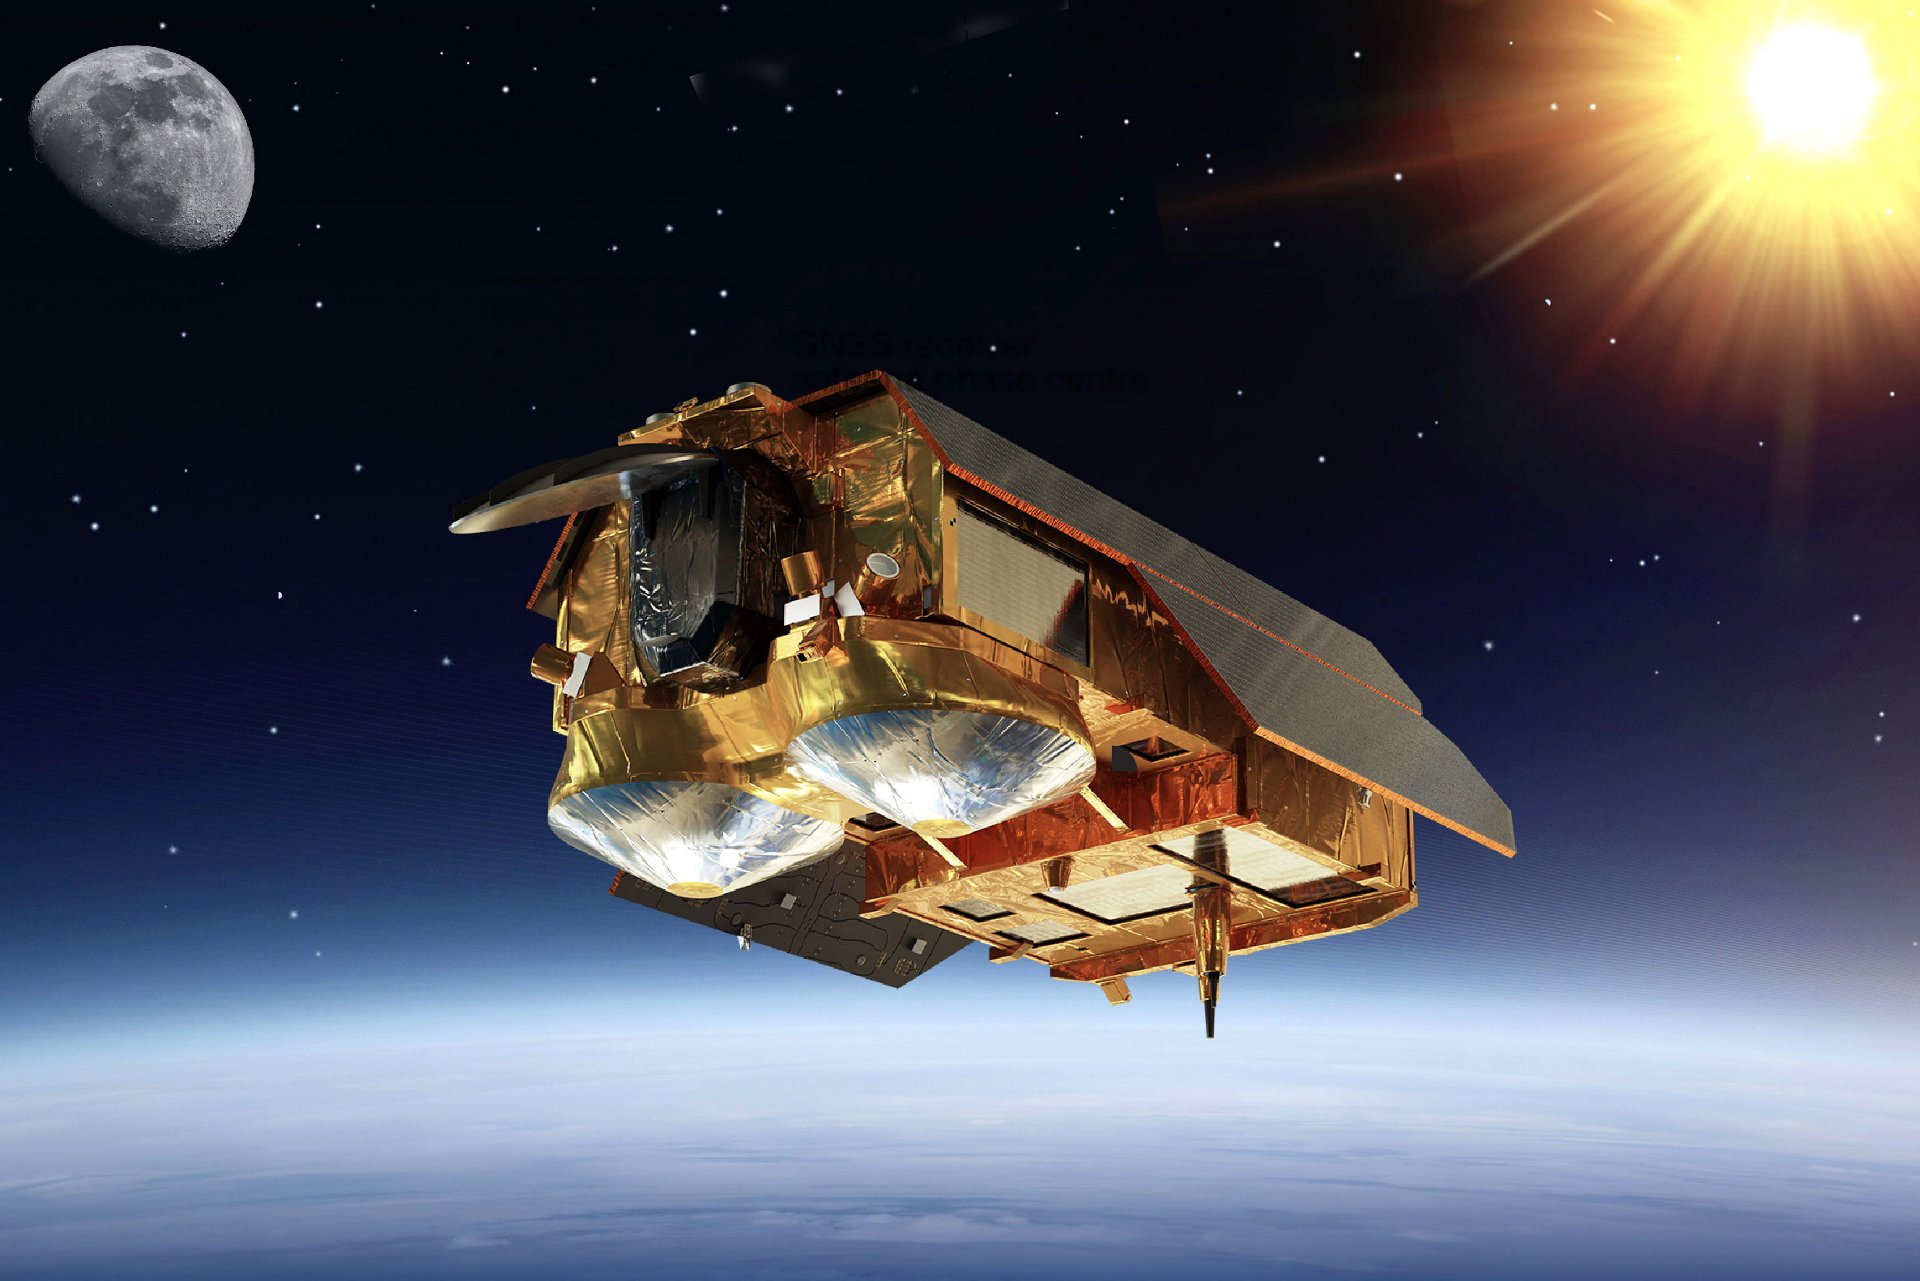 With launch planned in 2027, CRISTAL will carry an advanced multi-frequency altimeter that will measure sea ice thickness and ice sheet elevations. These data will support maritime operations in polar oceans and contribute to a better understanding of climate processes. CRISTAL will also support applications related to coastal and inland waters and the observation of ocean topography.